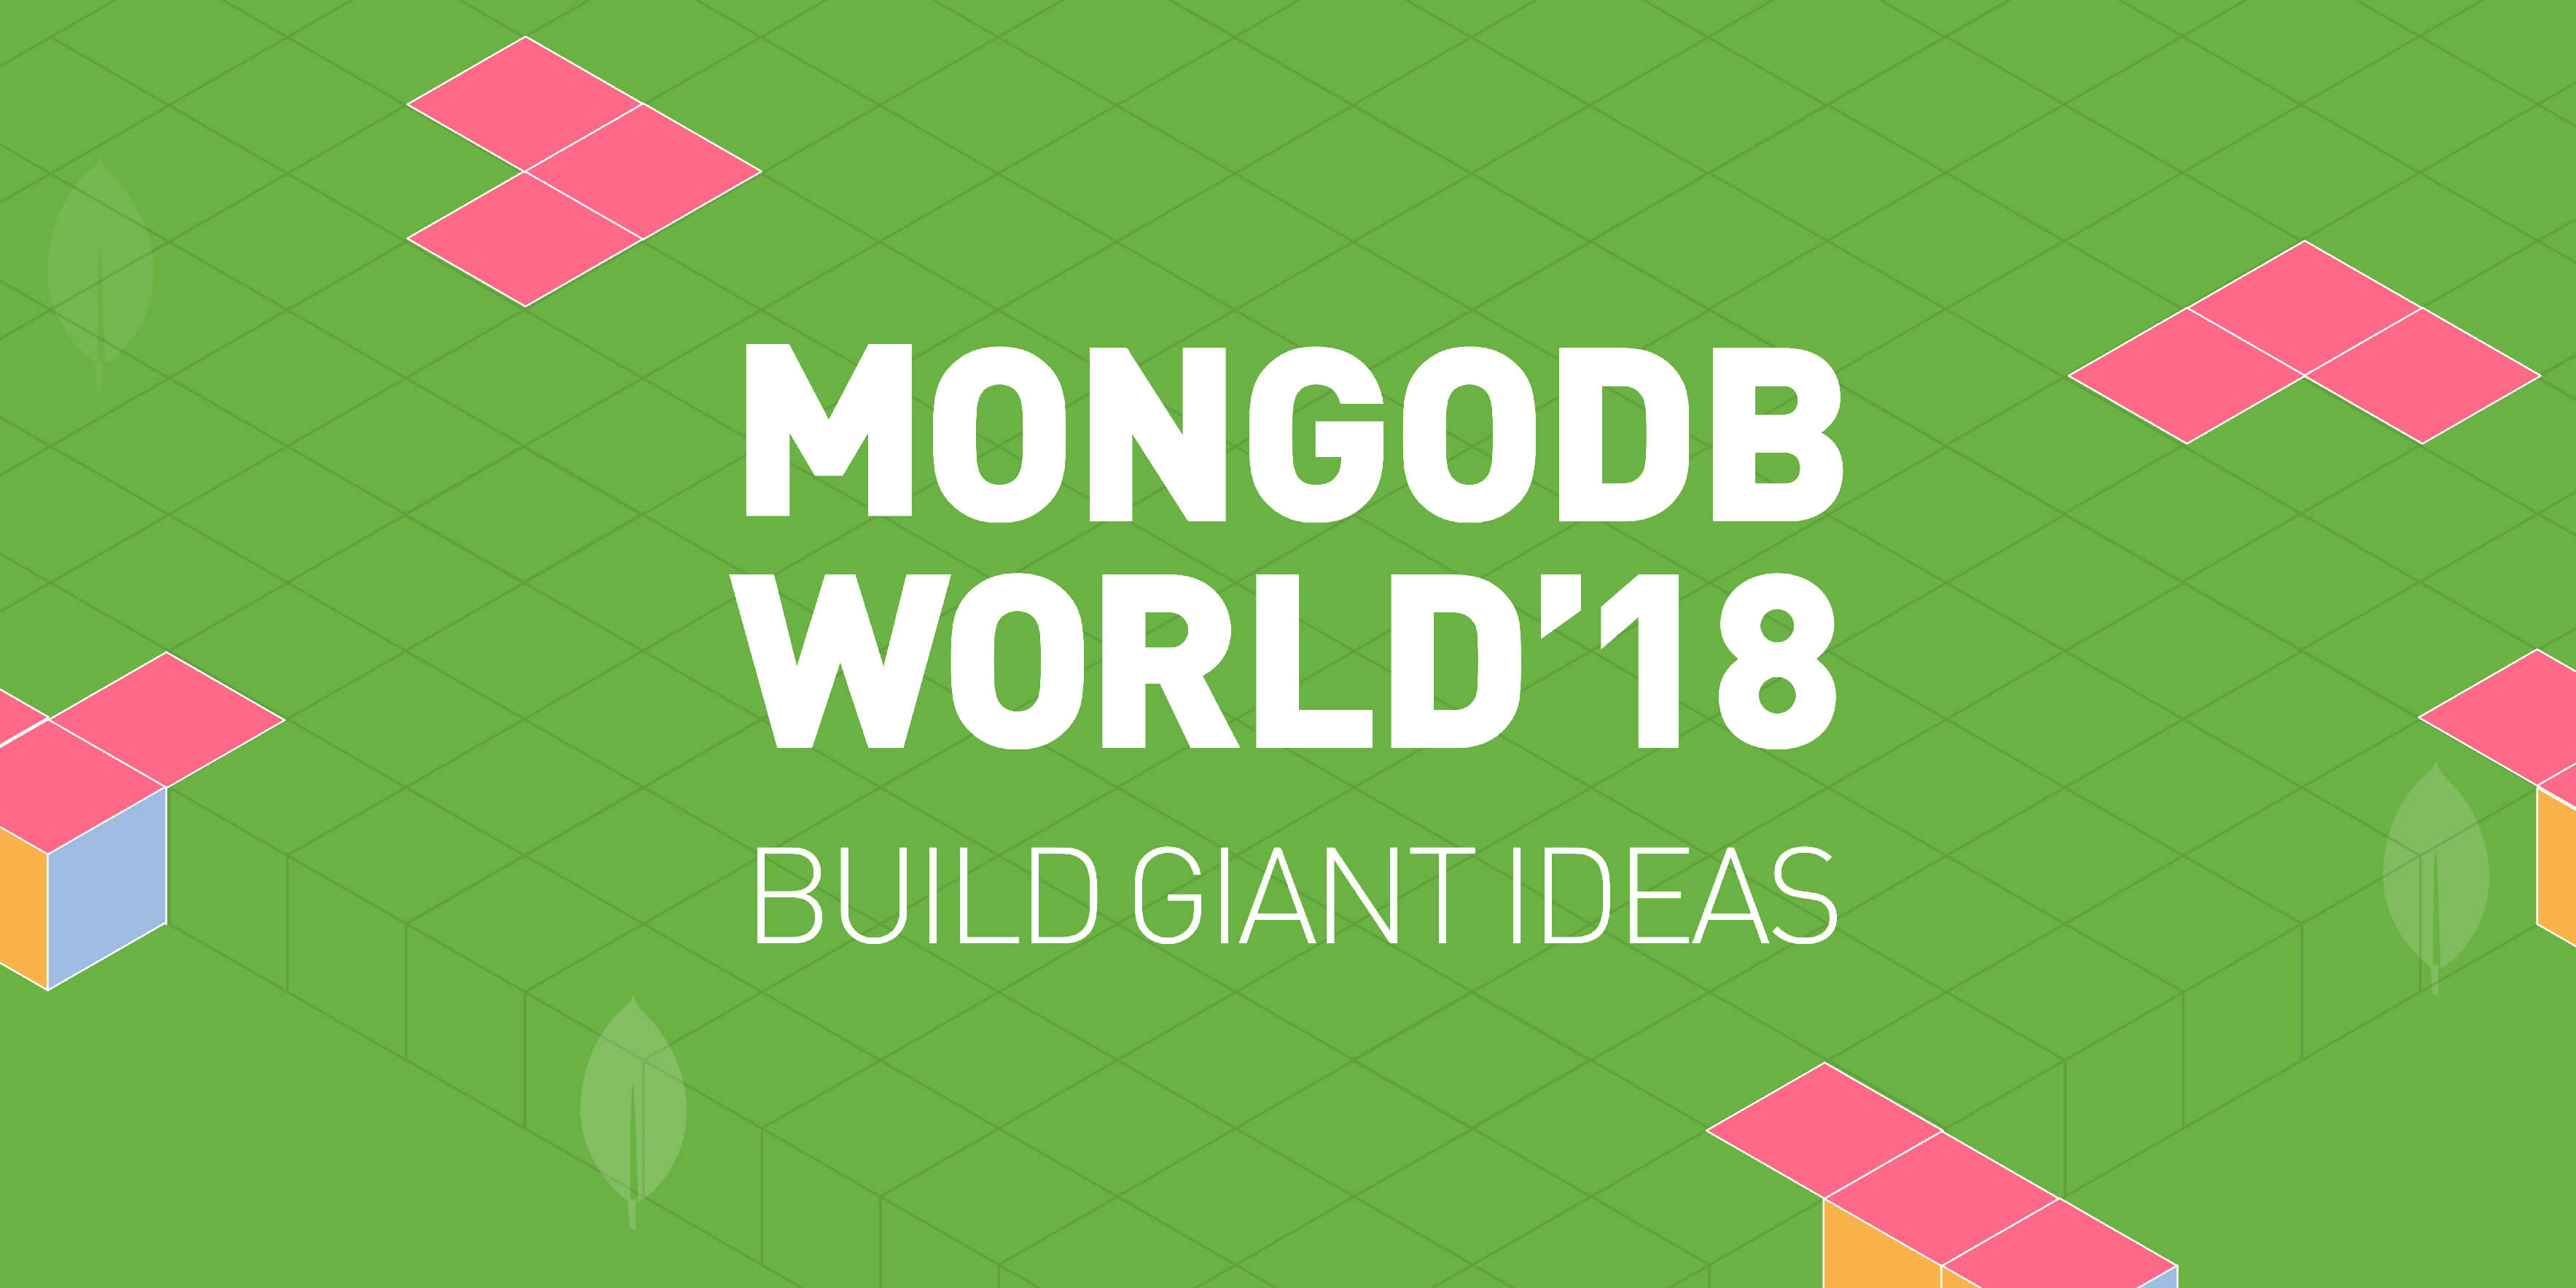 Nominations Now Open for the 2018 MongoDB Innovation Awards